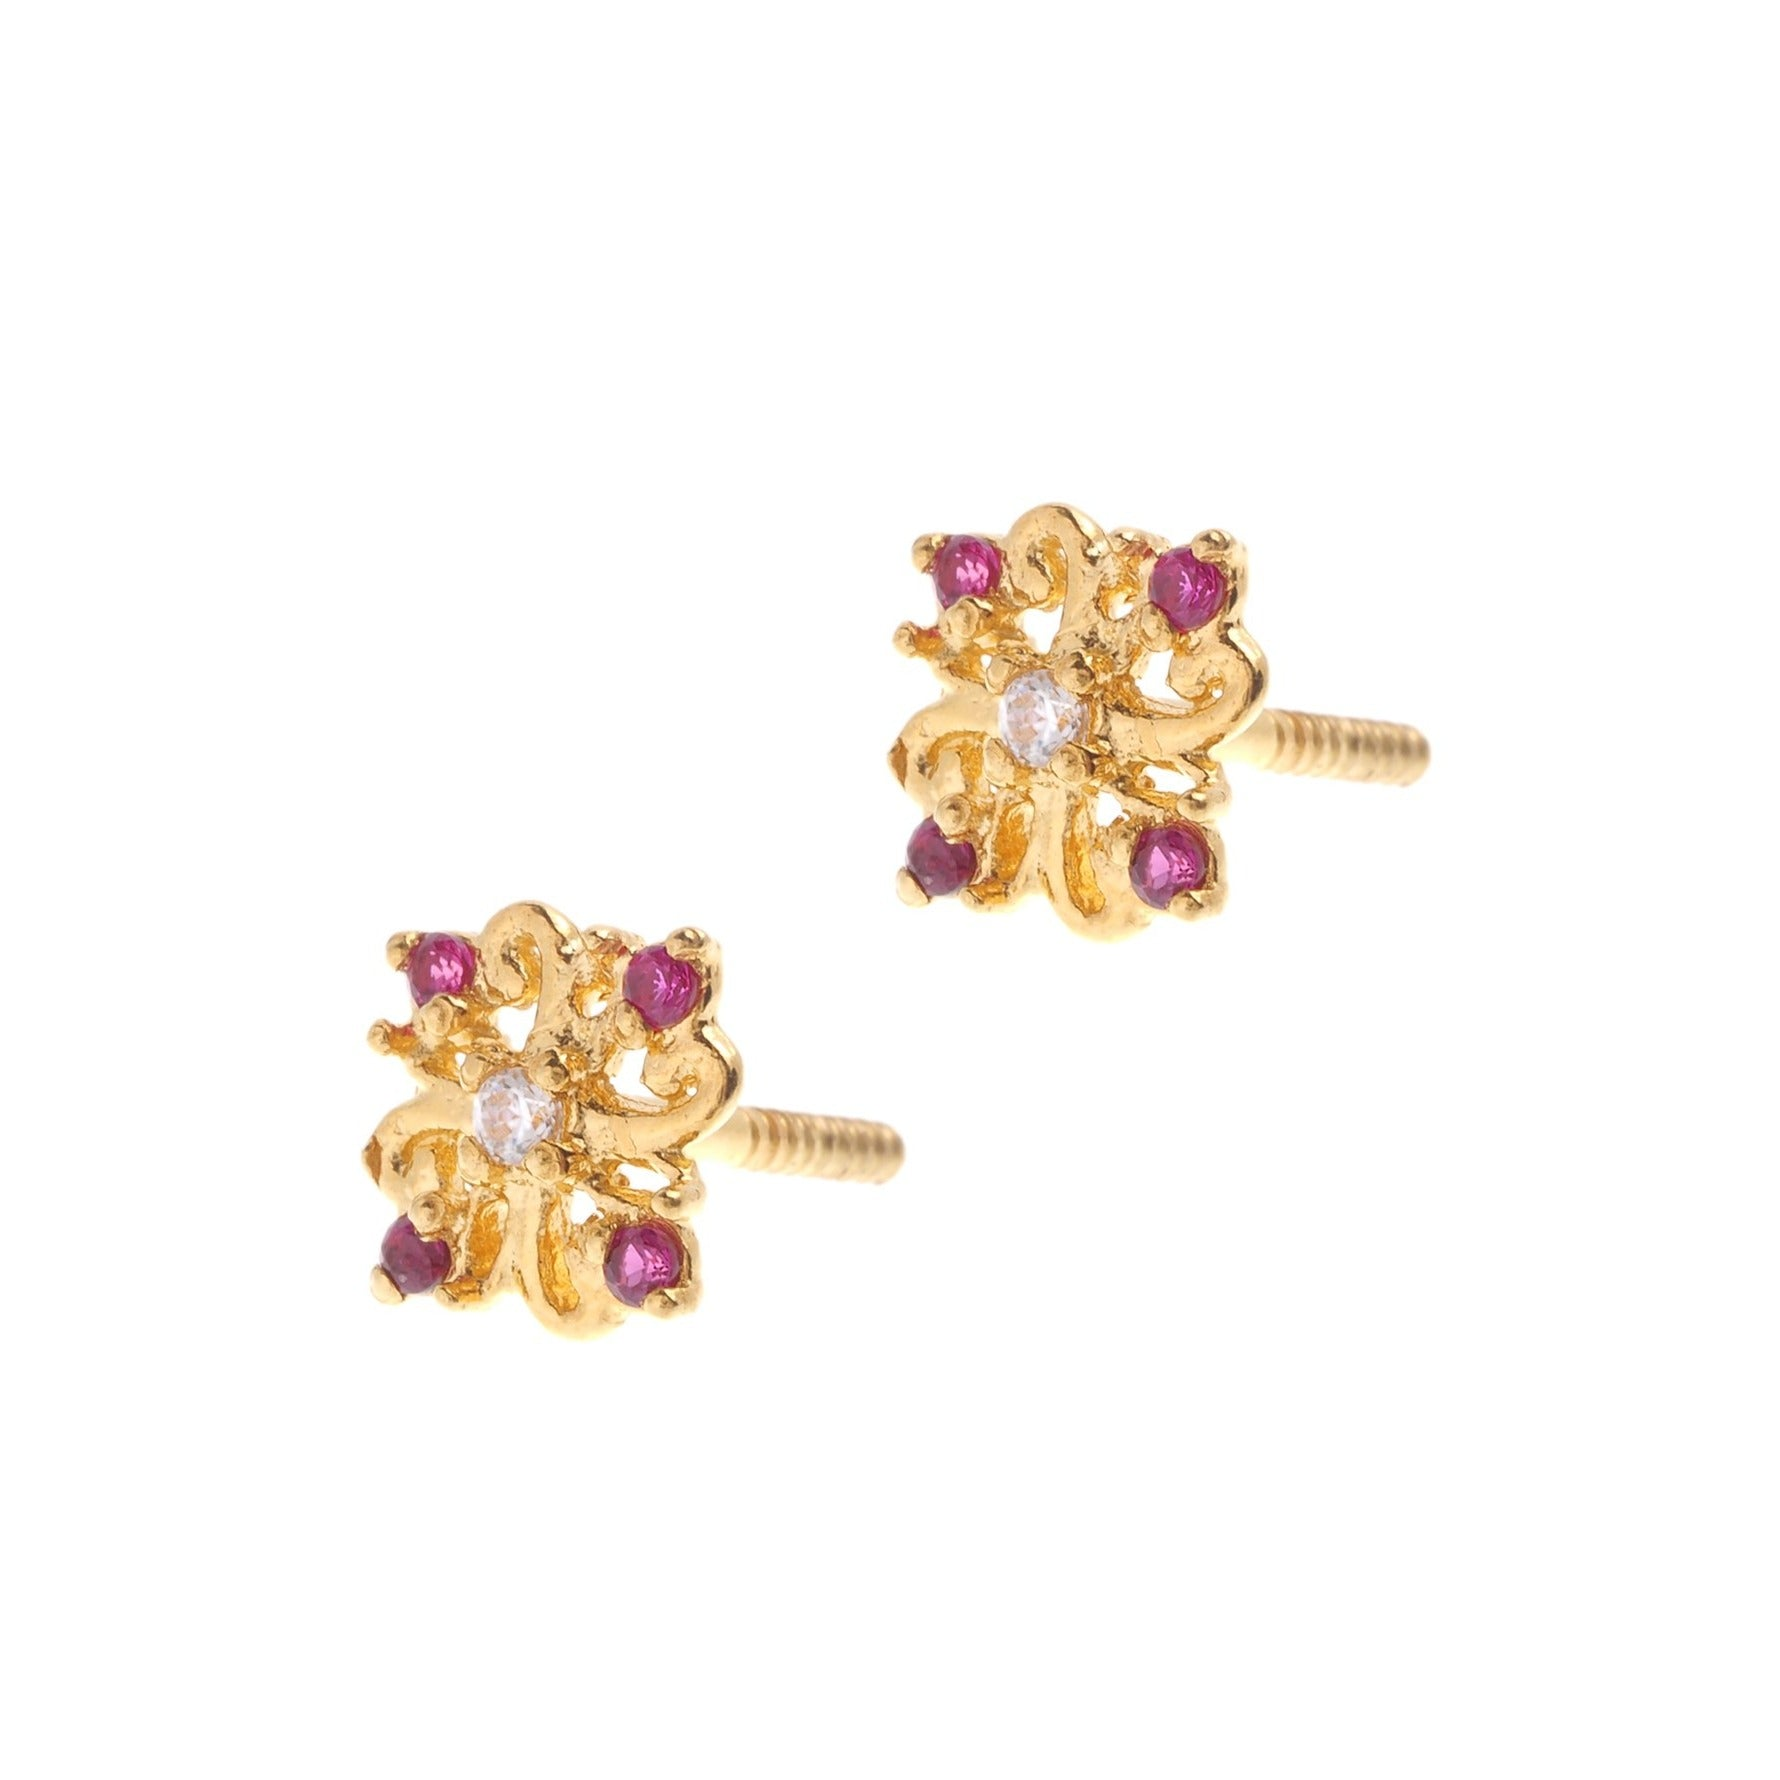 22ct Gold Stud Earrings Cubic Zirconia (White & Red) with Screw Backs (1.6g) E-6622